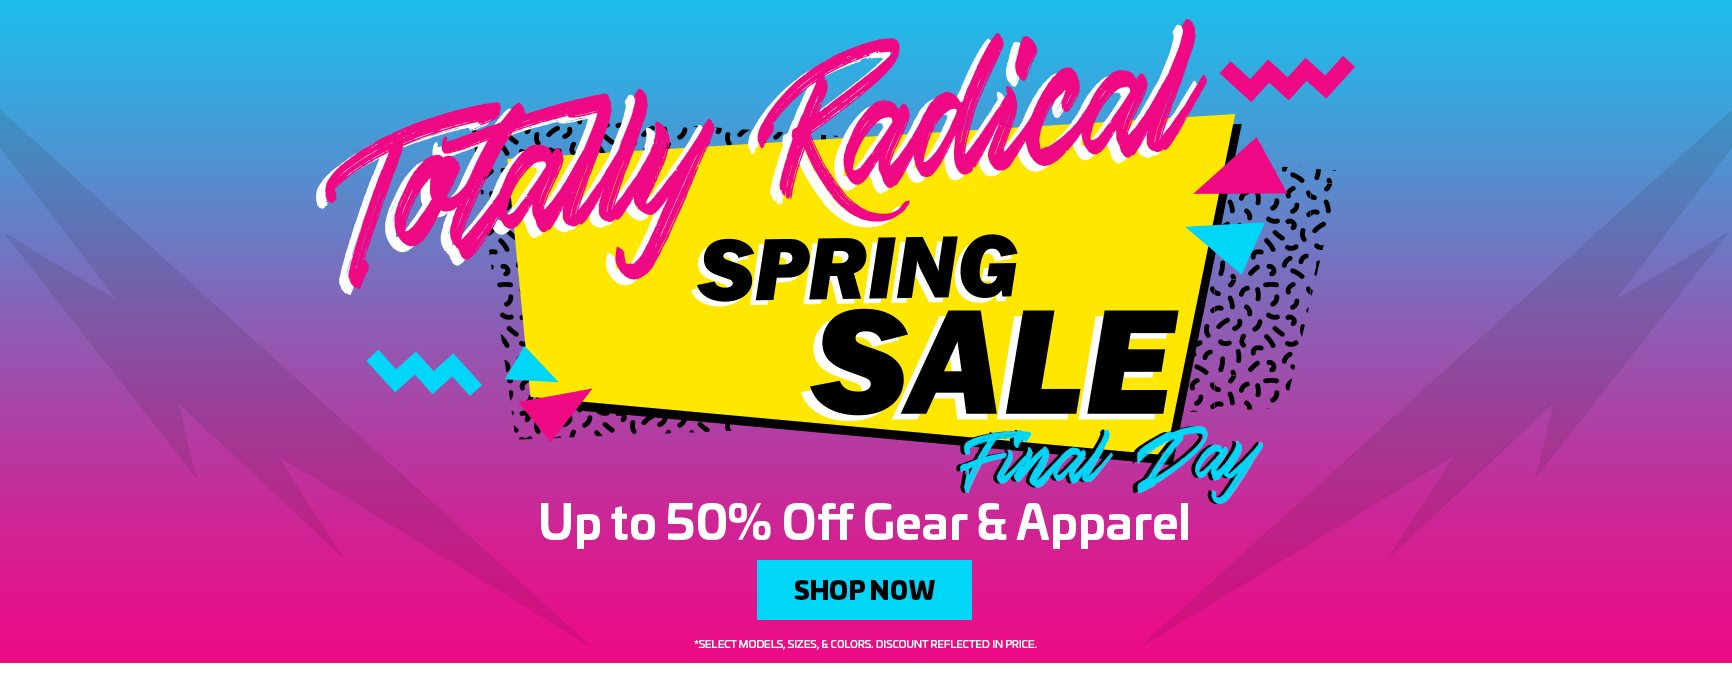 SHOP THE TOTALLY RADICAL SPRING SALE - BANNER